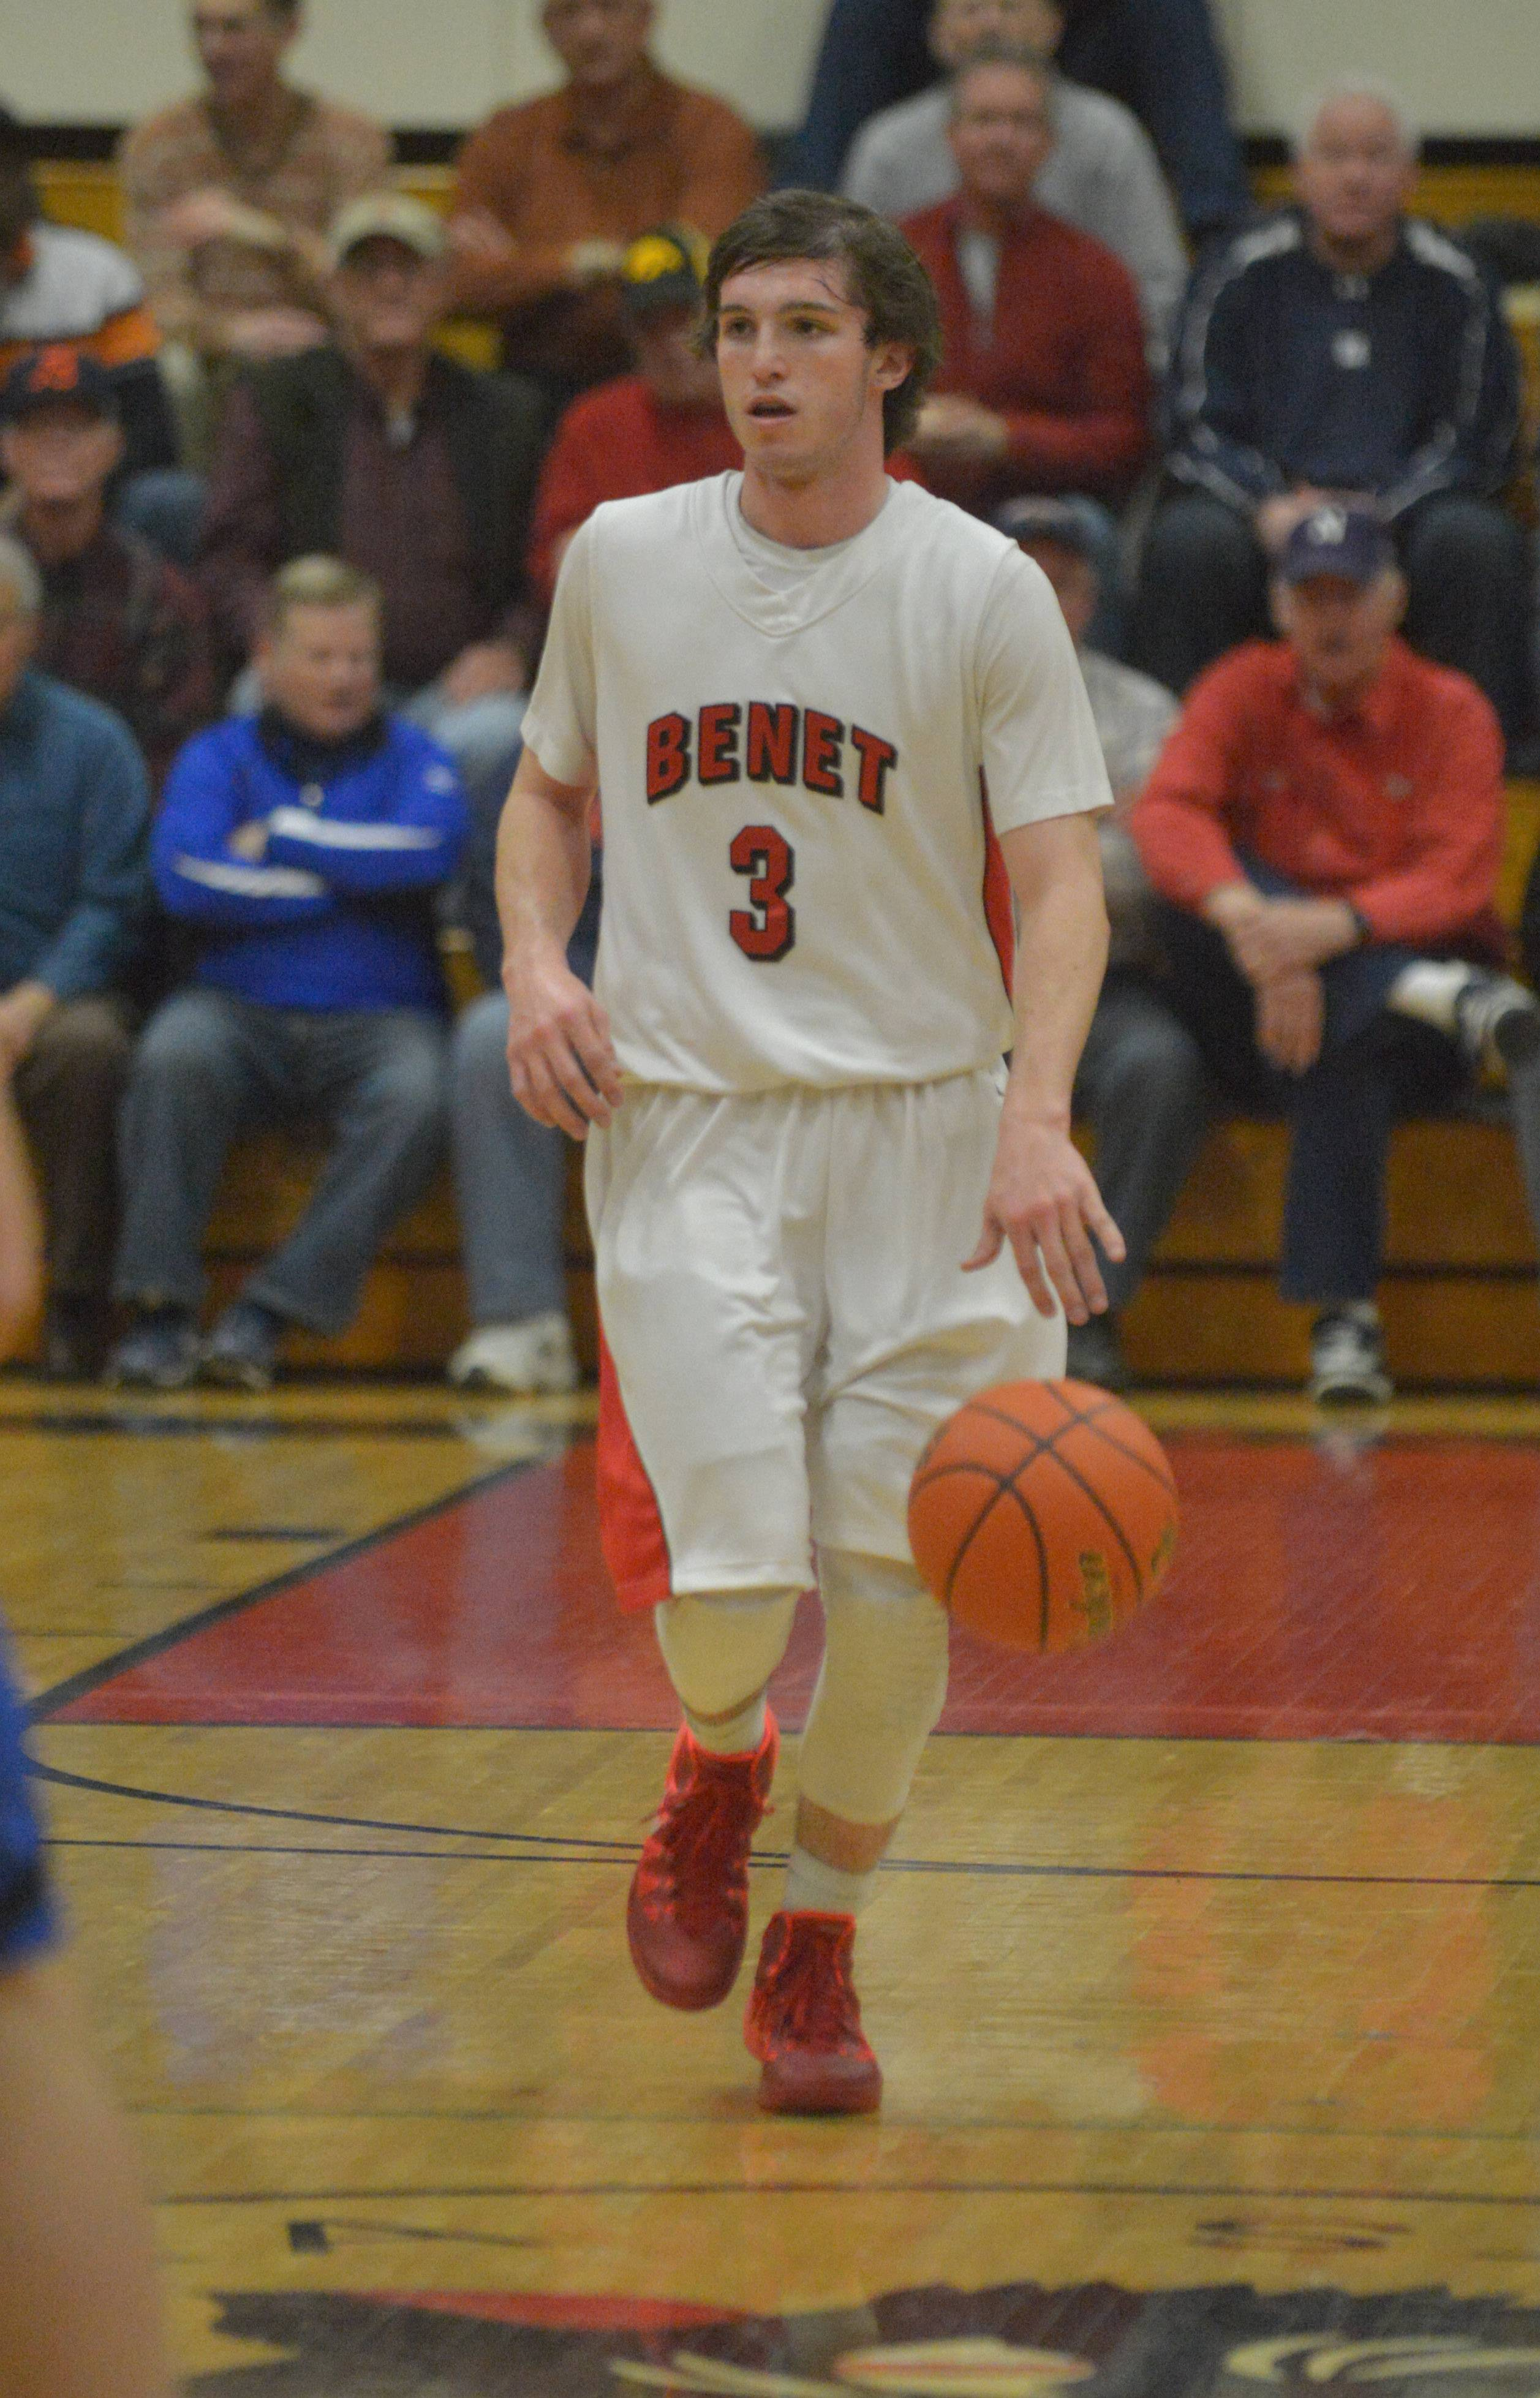 Benet guard Collin Pellettieri will guide the Redwings against Glenbard North on Tuesday night.